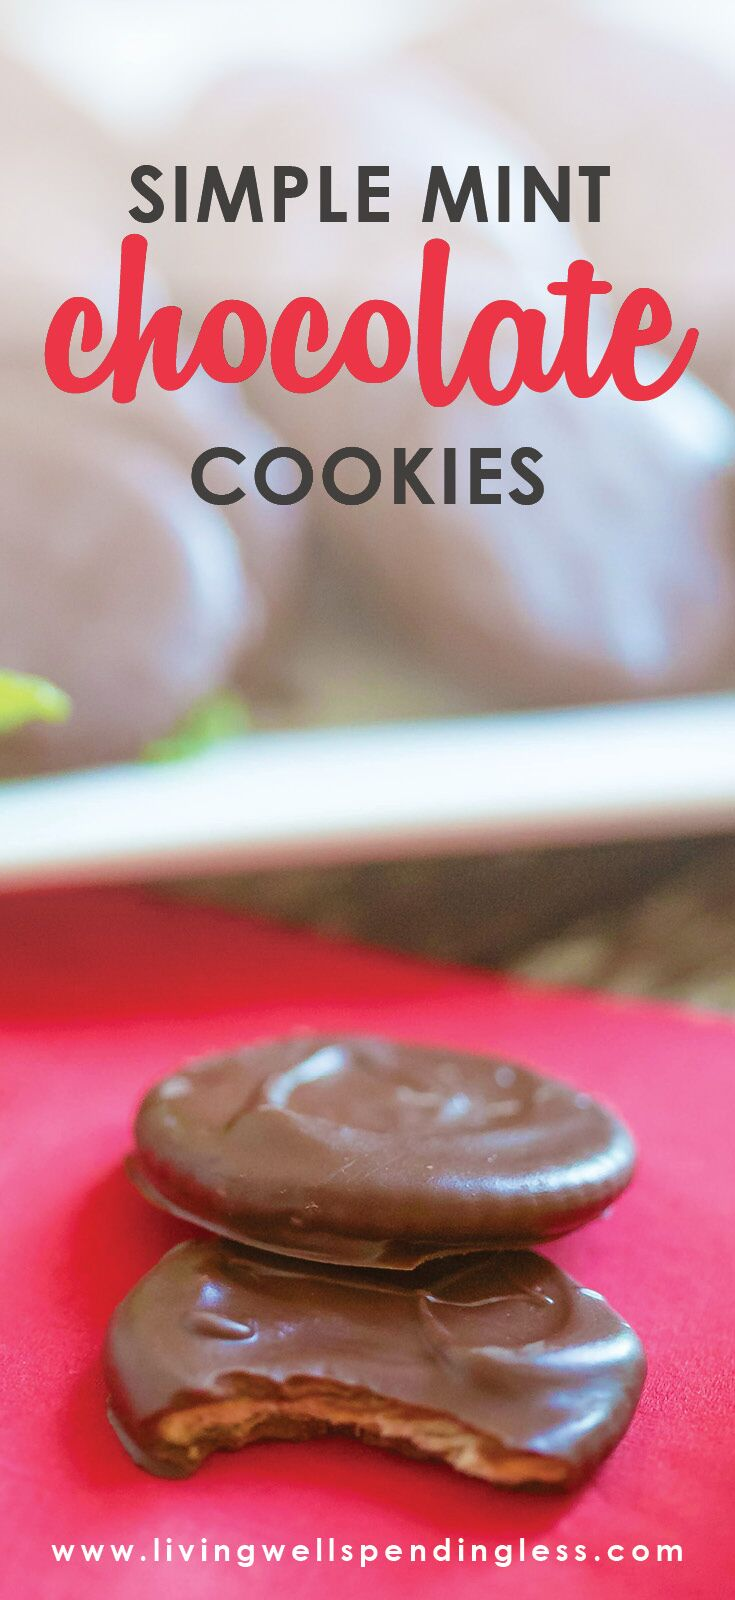 Simple Chocolate Mint Cookies   5 Ingredients or Less   Dessert   Food Made Simple   Holiday Treats